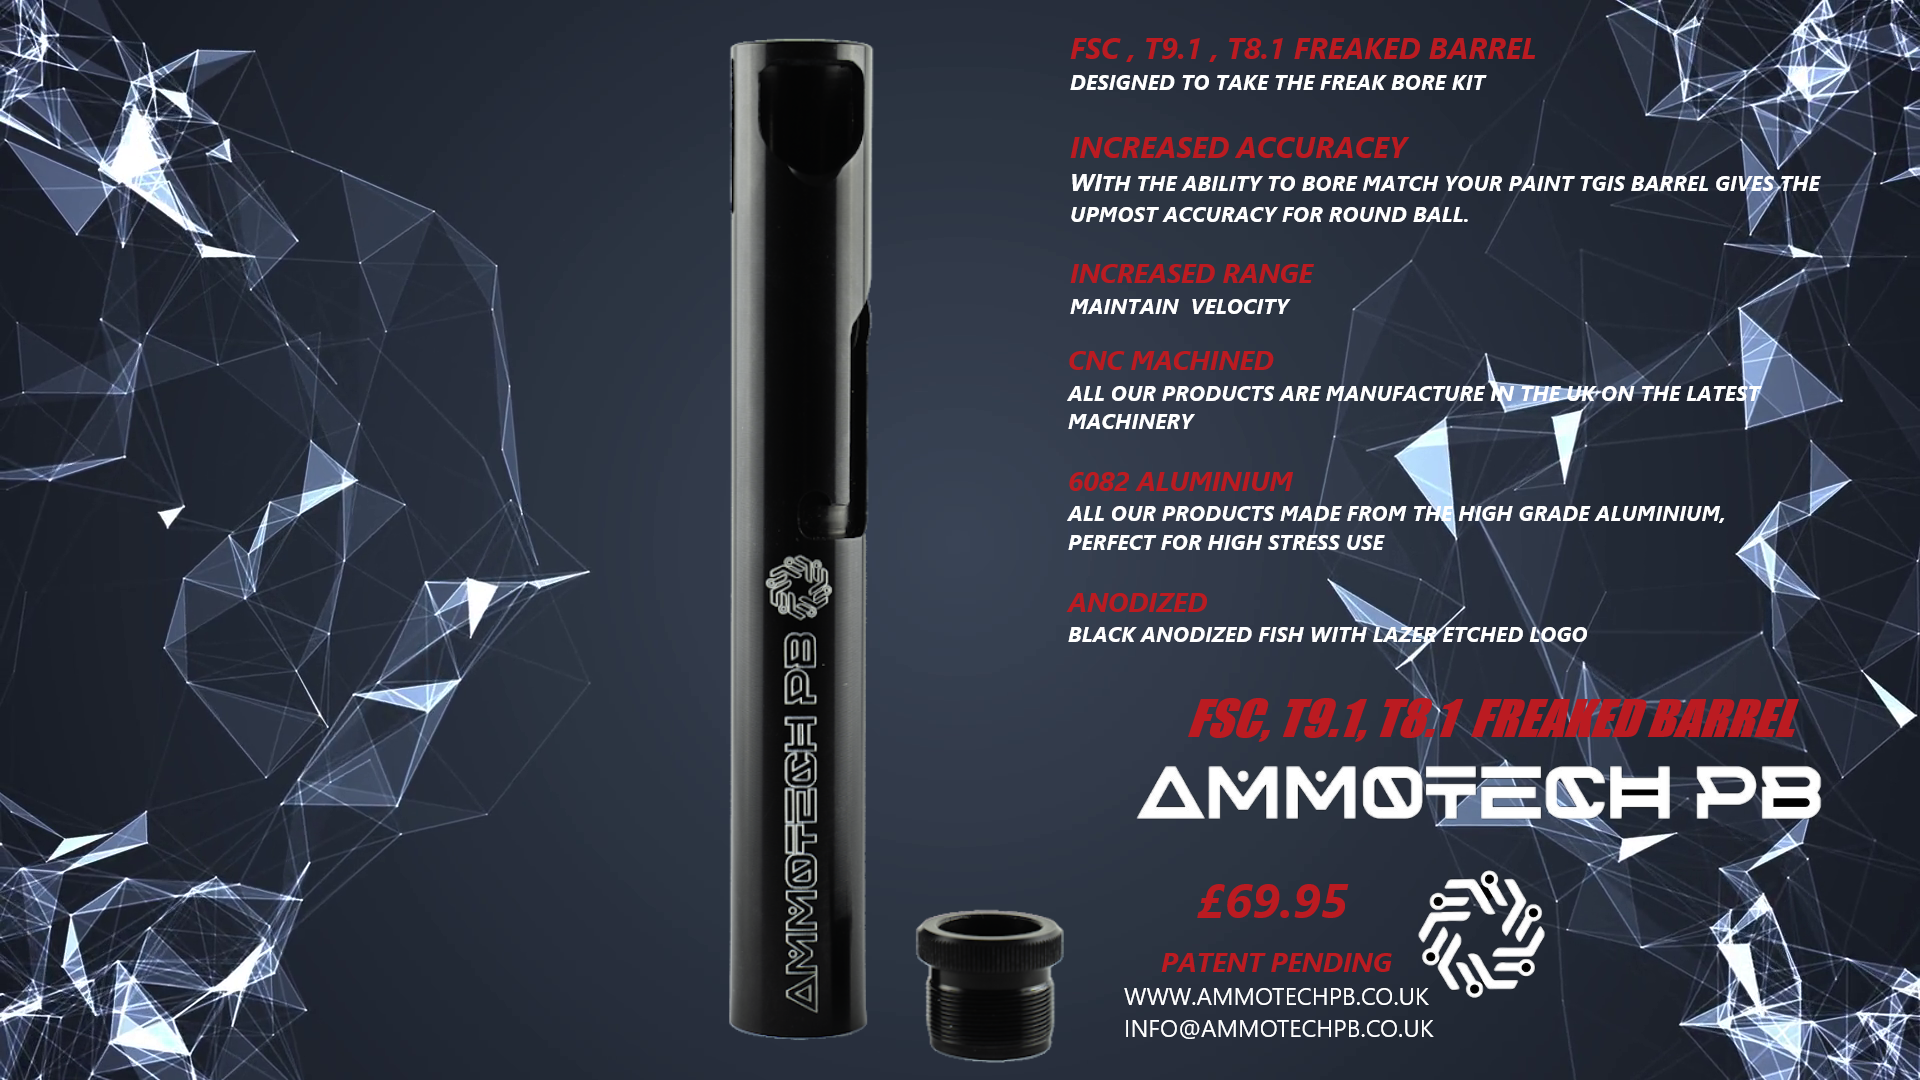 Ammotech Freak Barrel for 8.1 / 9.1 / FSC